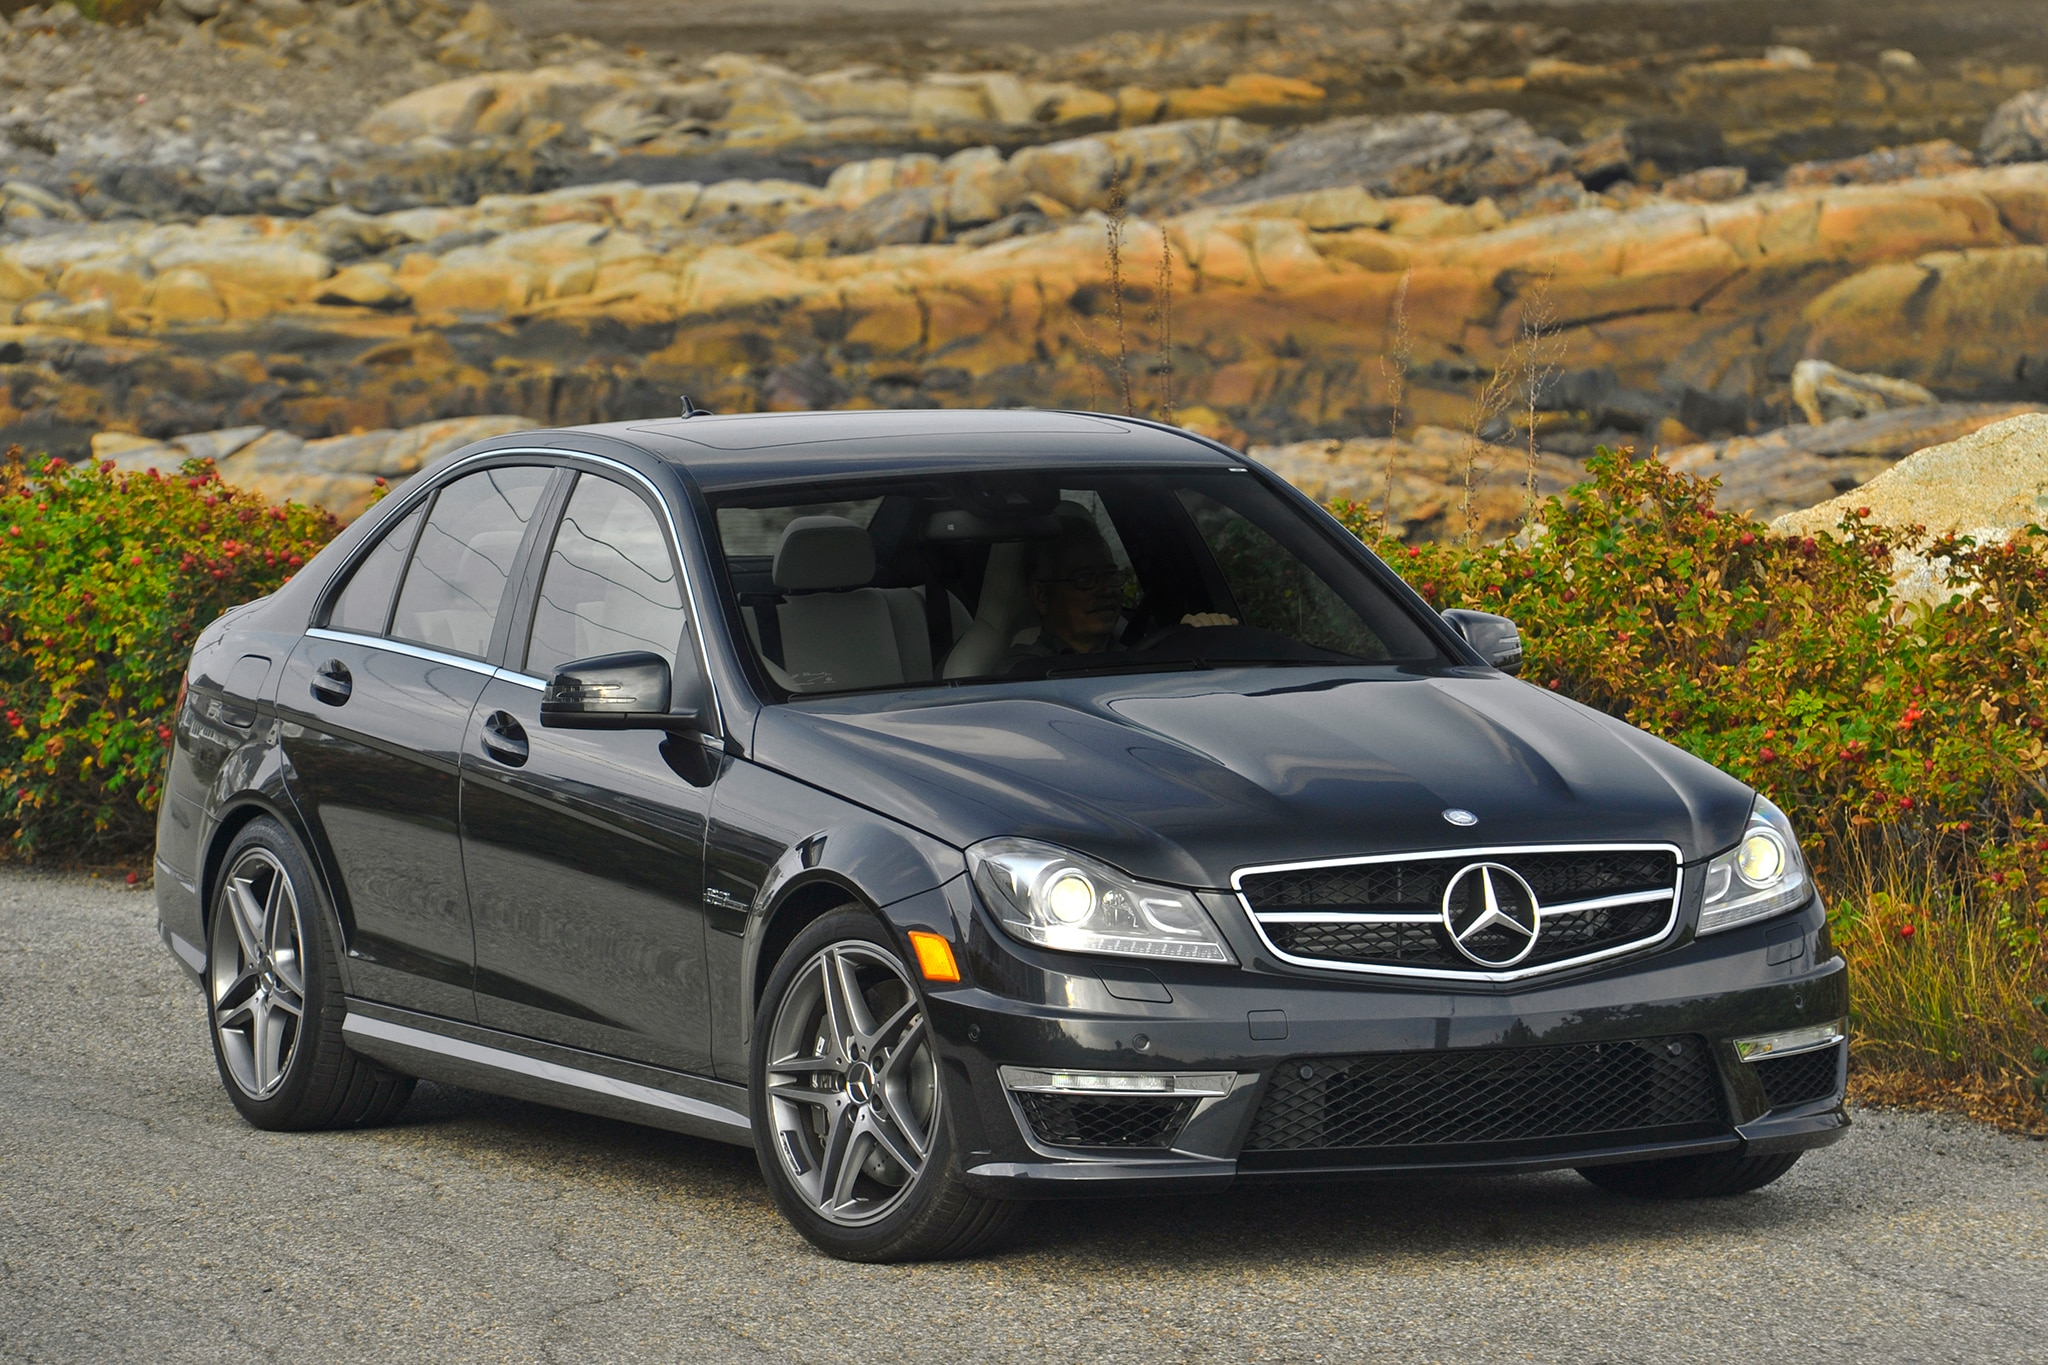 2013 mercedes benz c300 4matic gains power economy m for Mercedes benz 300 amg